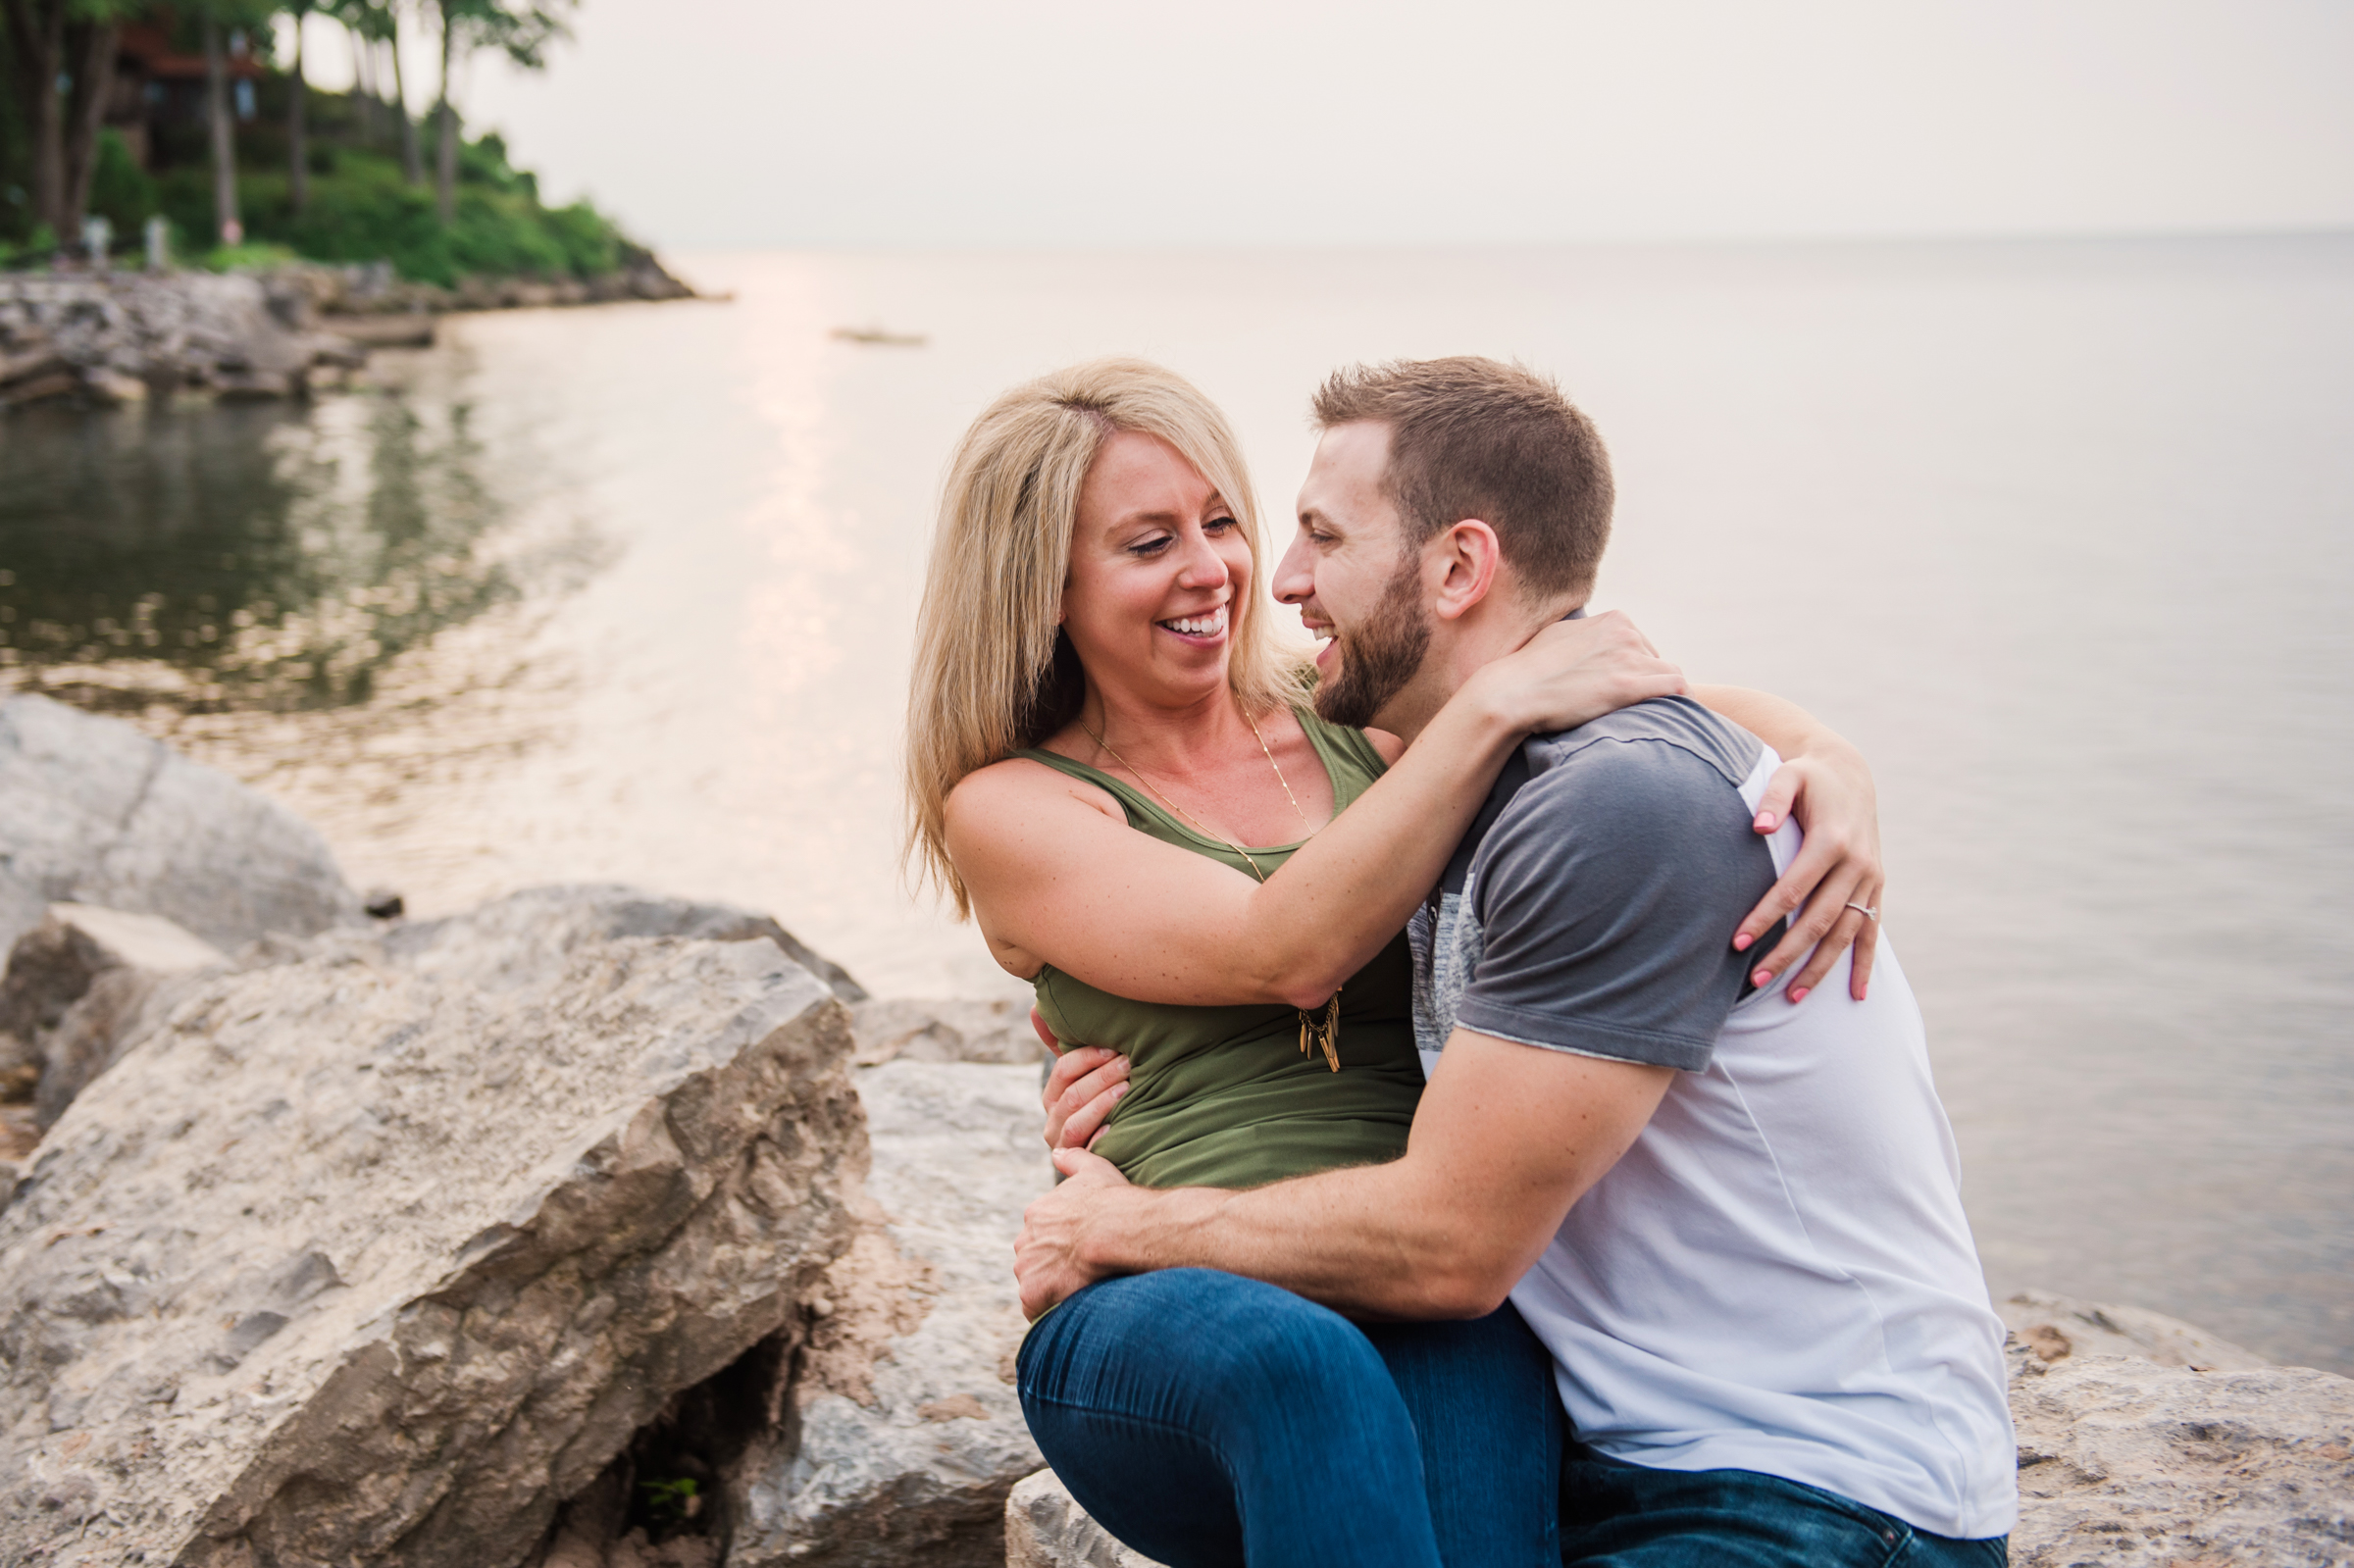 Webster_Park_Rochester_Engagement_Session_JILL_STUDIO_Rochester_NY_Photographer_DSC_9354.jpg